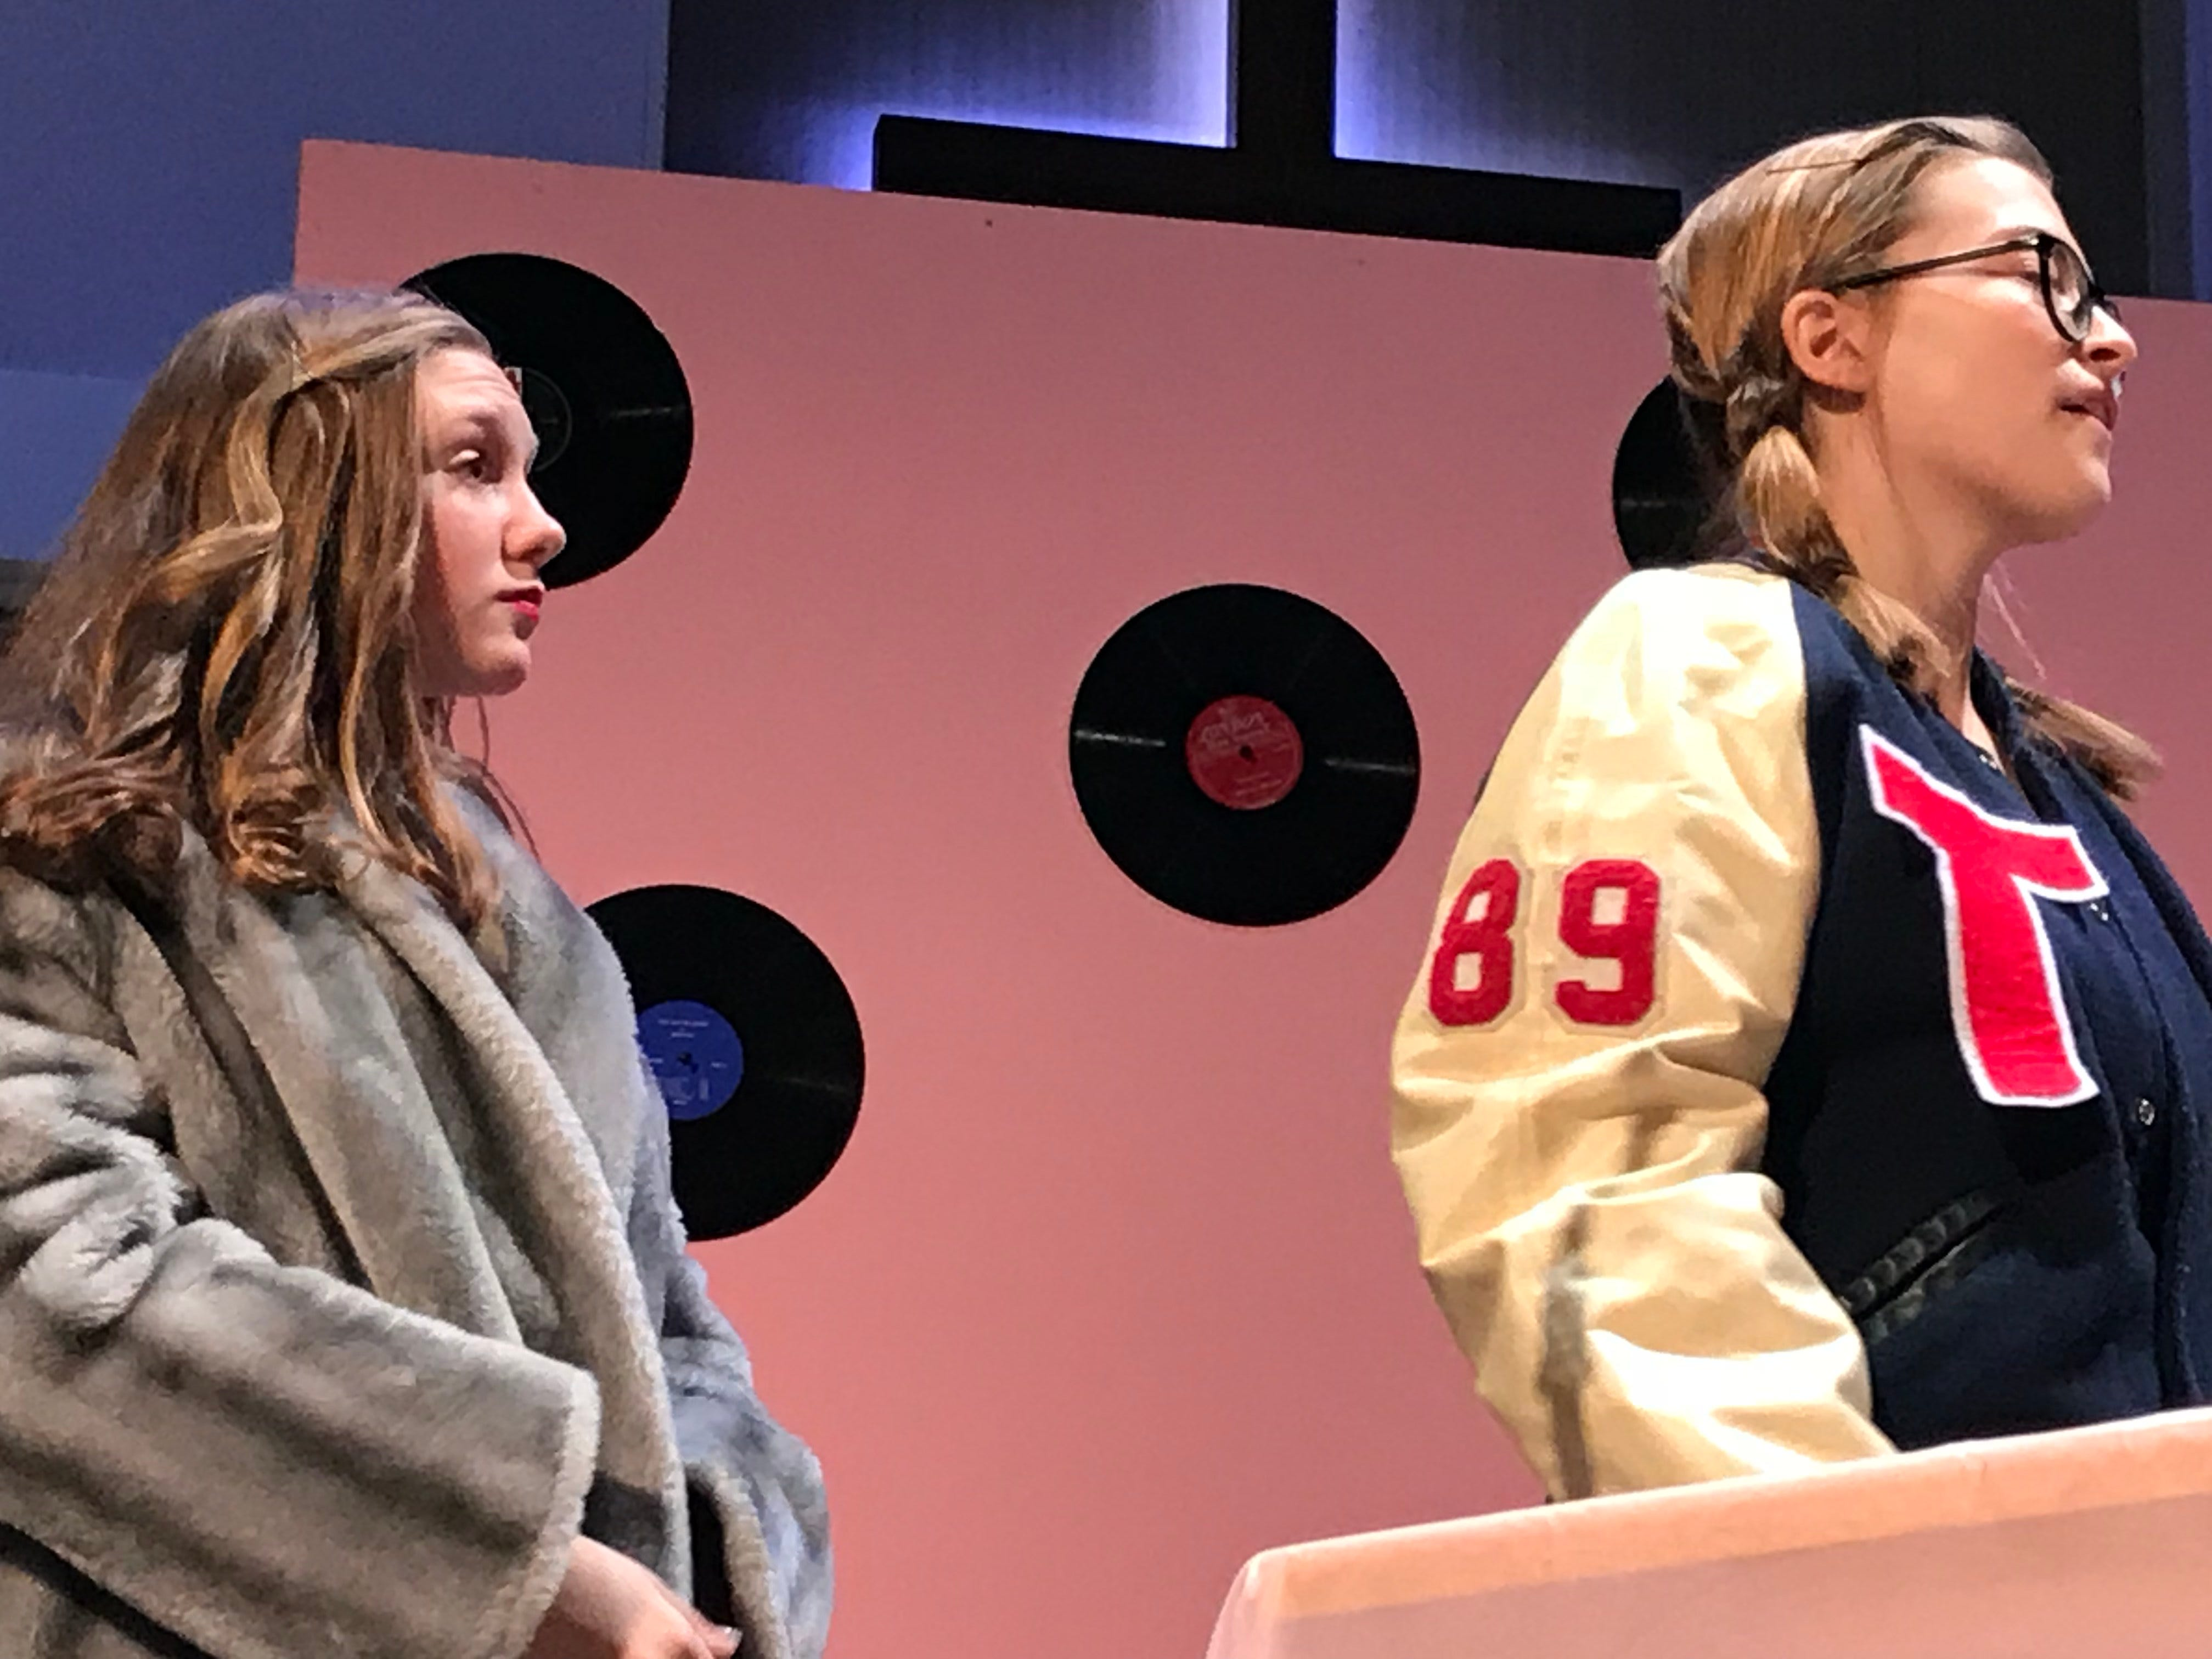 """Cumberland Valley Christian School students Emmalyn Hott, left, playing """"Holly Wood,"""" and Marlee Stake, playing """"Wynn Fairly,"""" act out a scene in """"Murder at the Malt Shop"""" during a dress rehearsal on Friday afternoon. The public is invited to see the play at 7 p.m. tonight at the Open Door Church, which is located in the Cumberland Valley Christian School complex, at 600 Miller St., Chambersburg."""